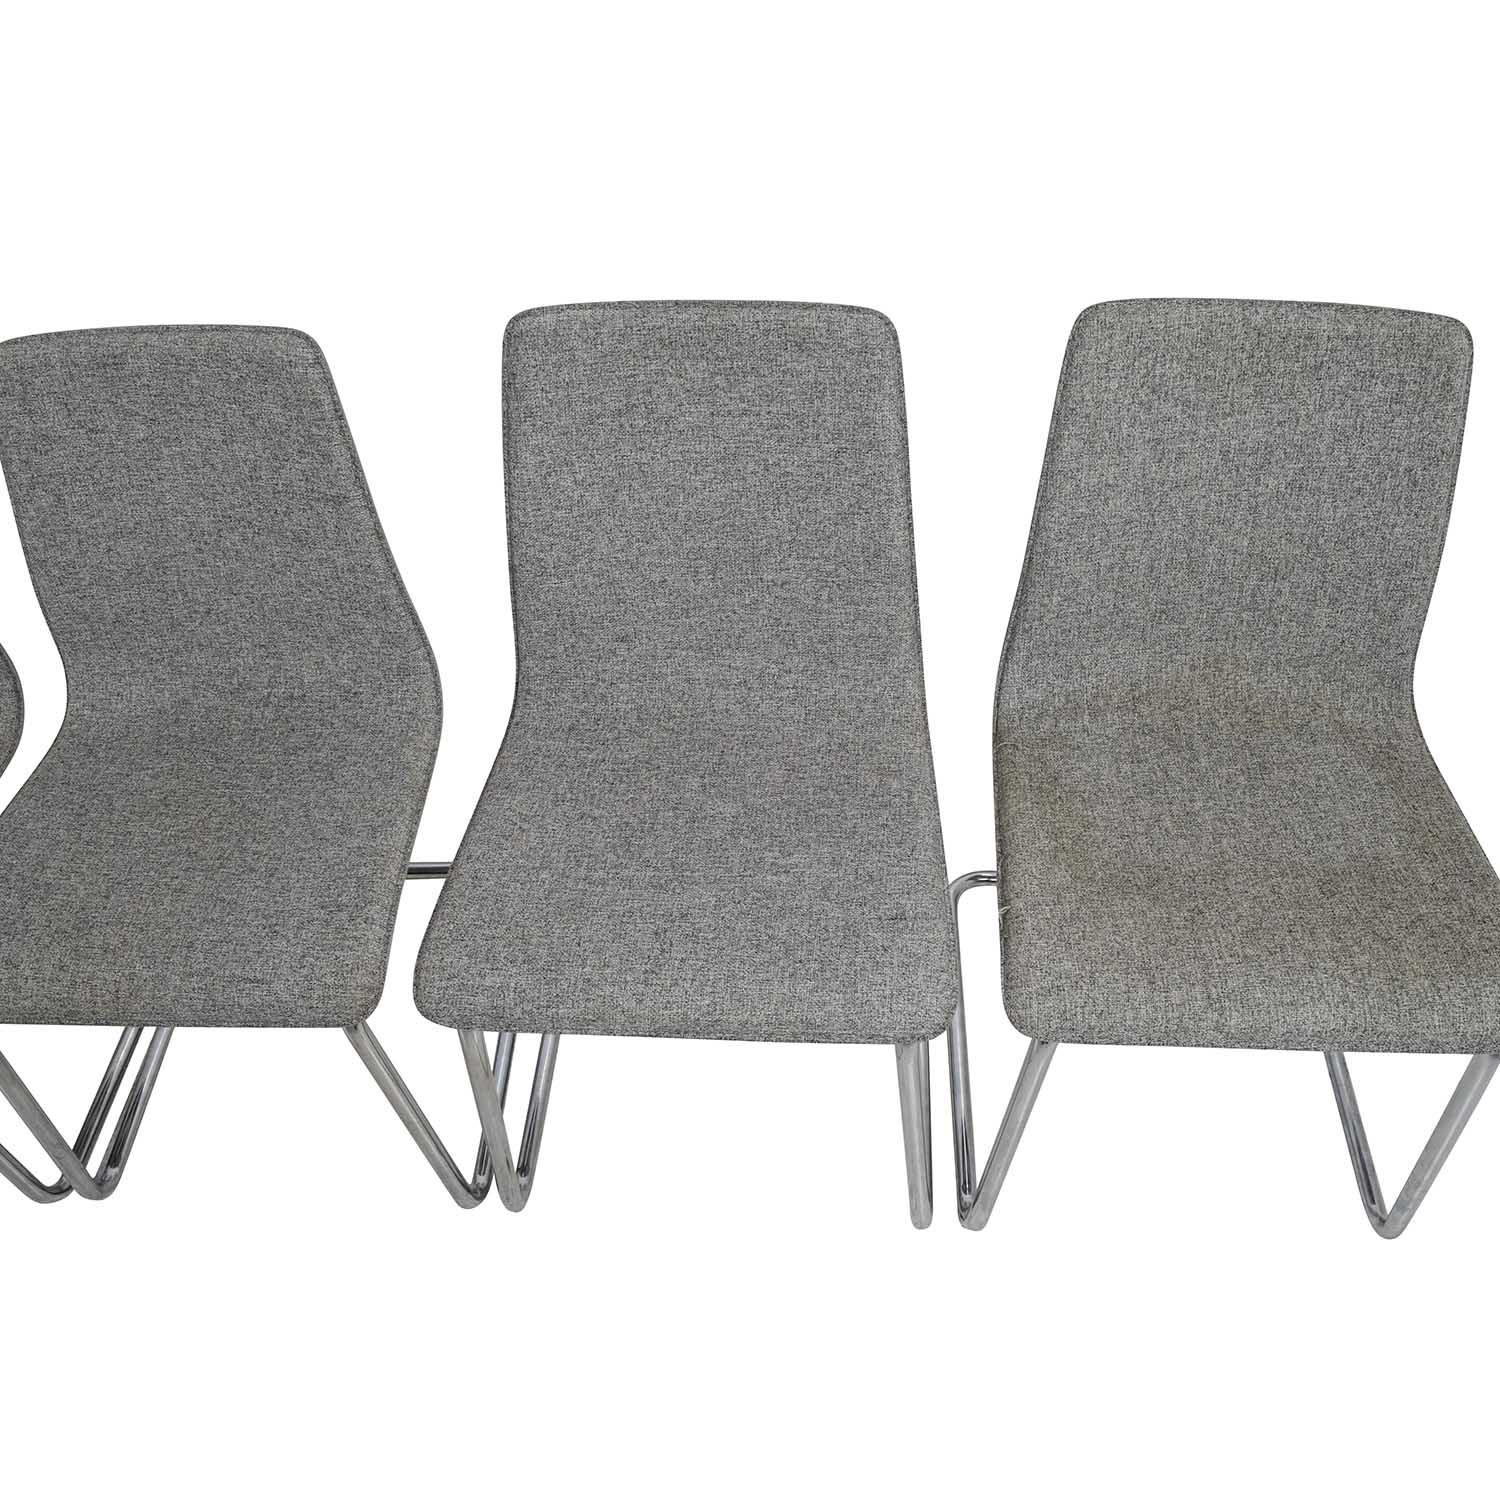 Ordinaire CB2 Gray Pony Chairs CB2